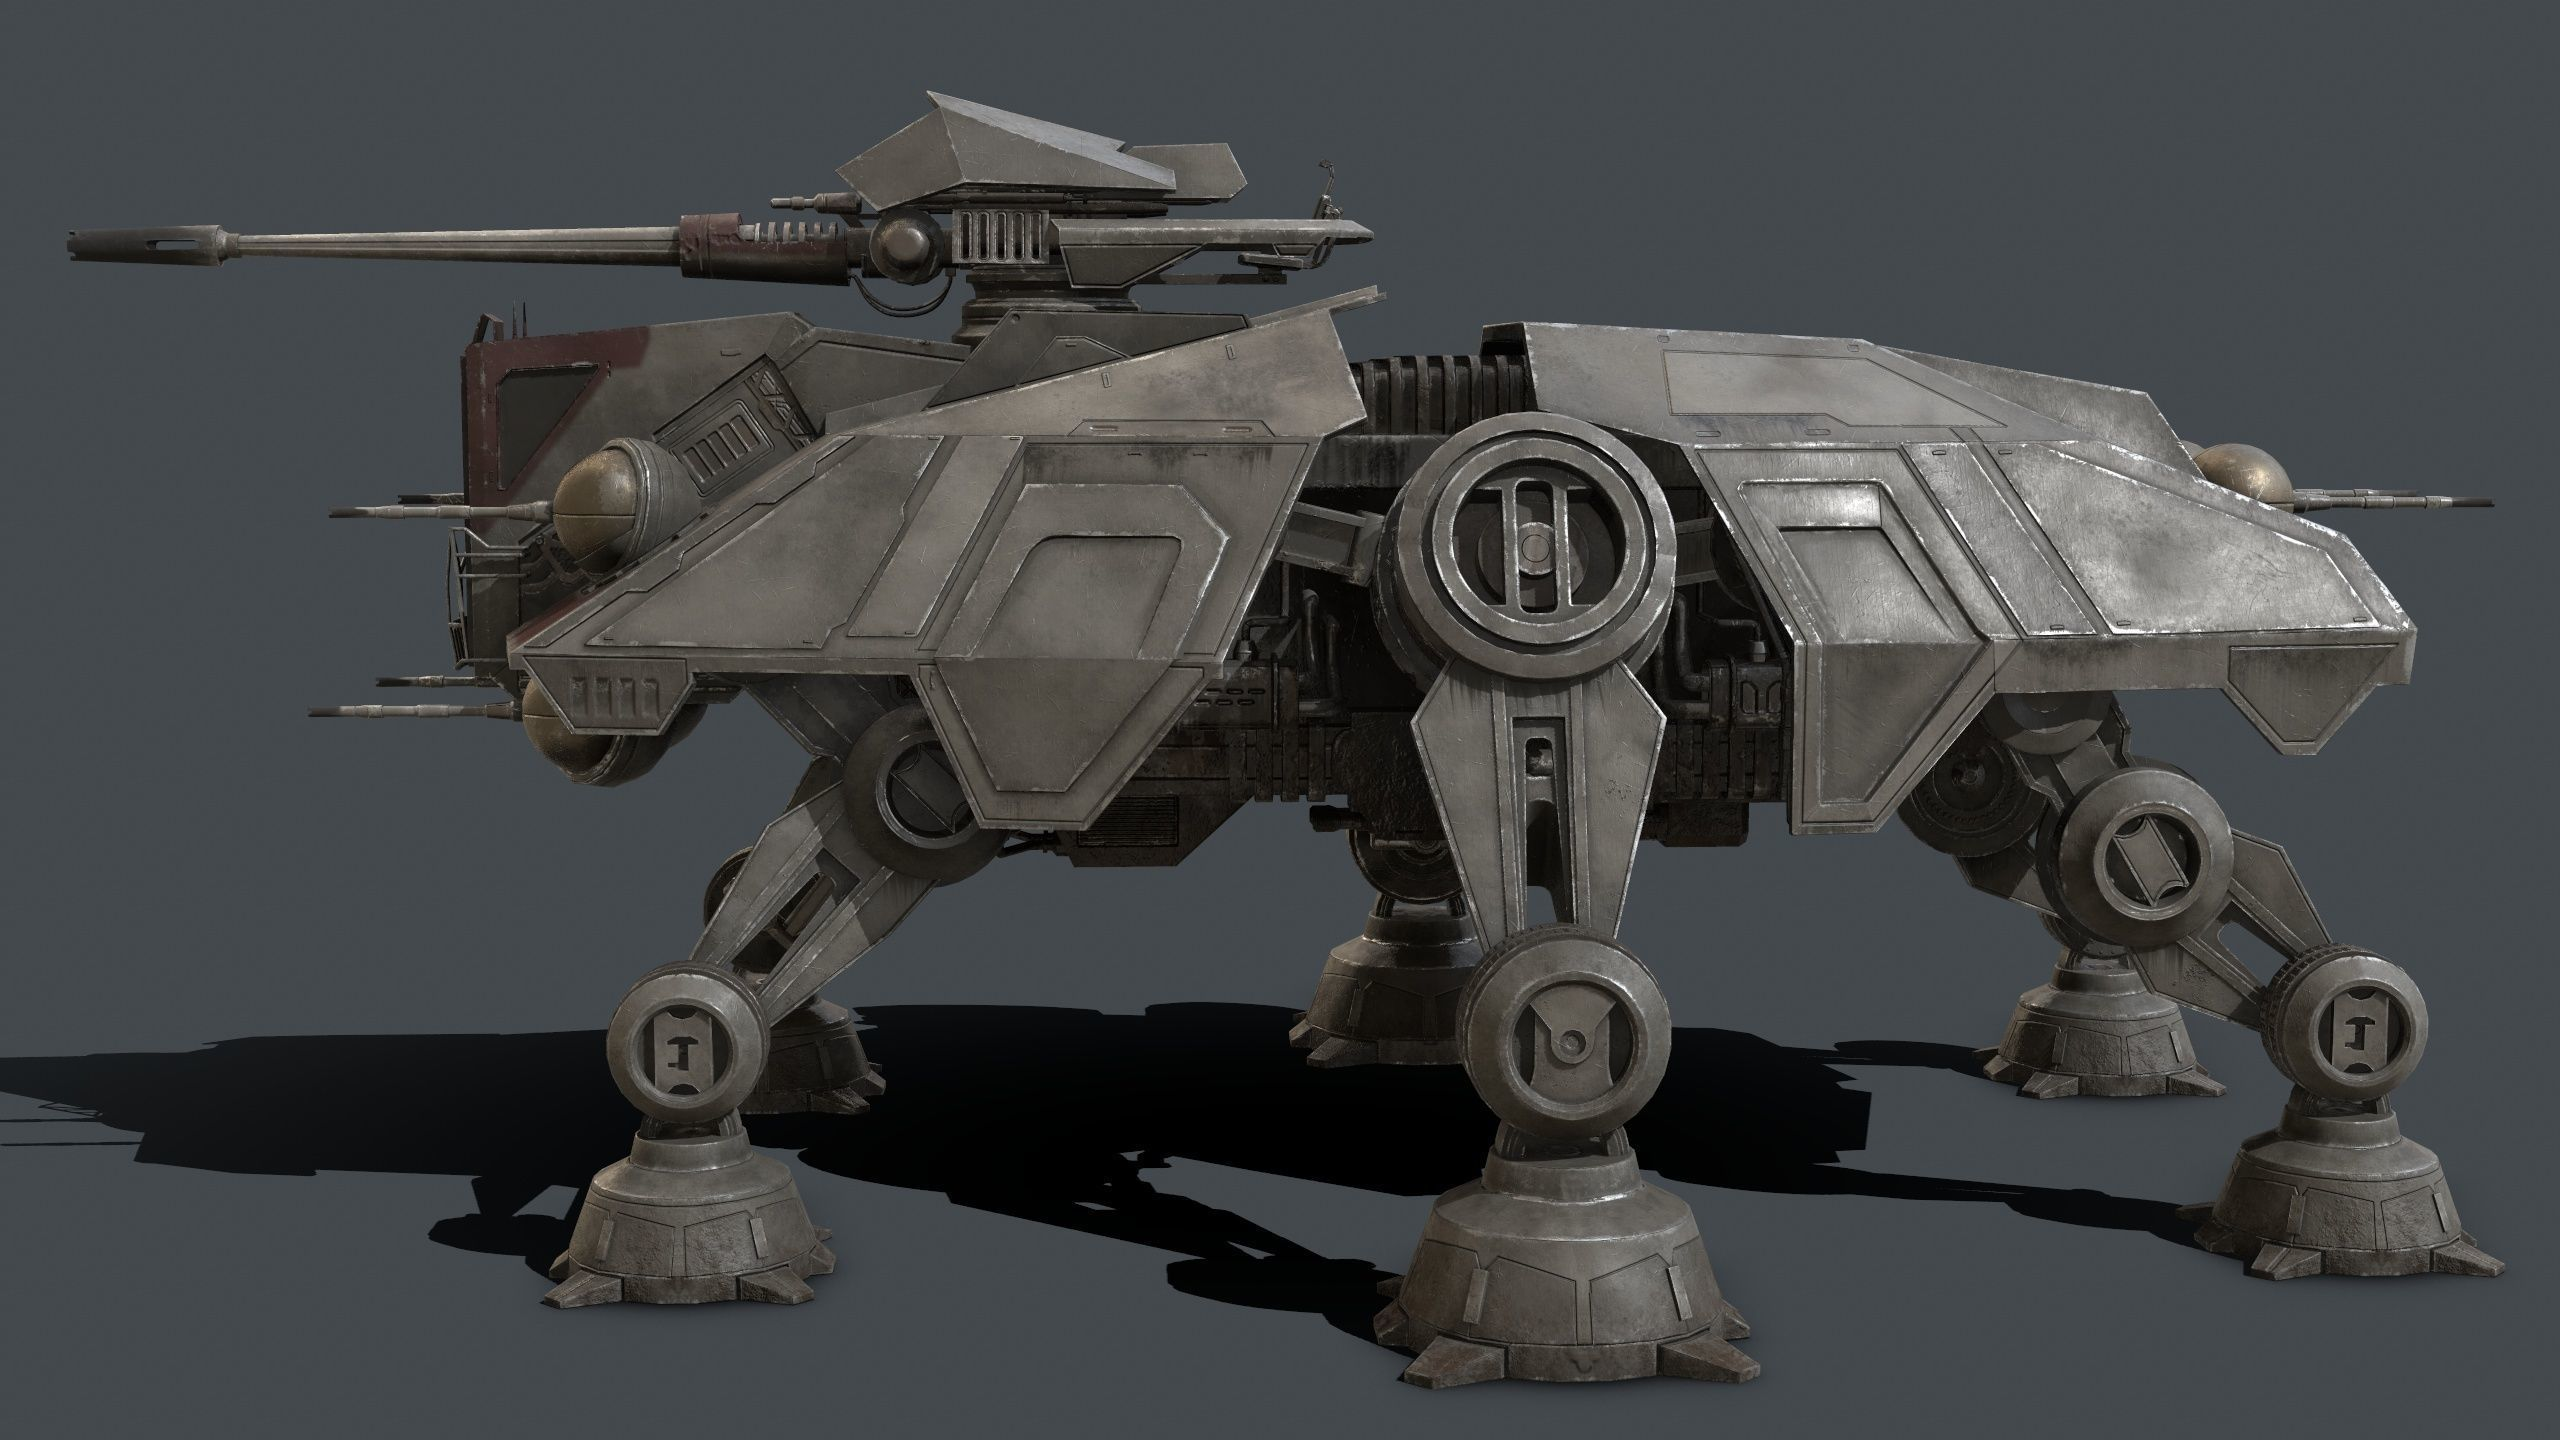 Star Wars At Te 3d Model Star Wars Ships Star Wars Rpg Star Wars Clone Wars